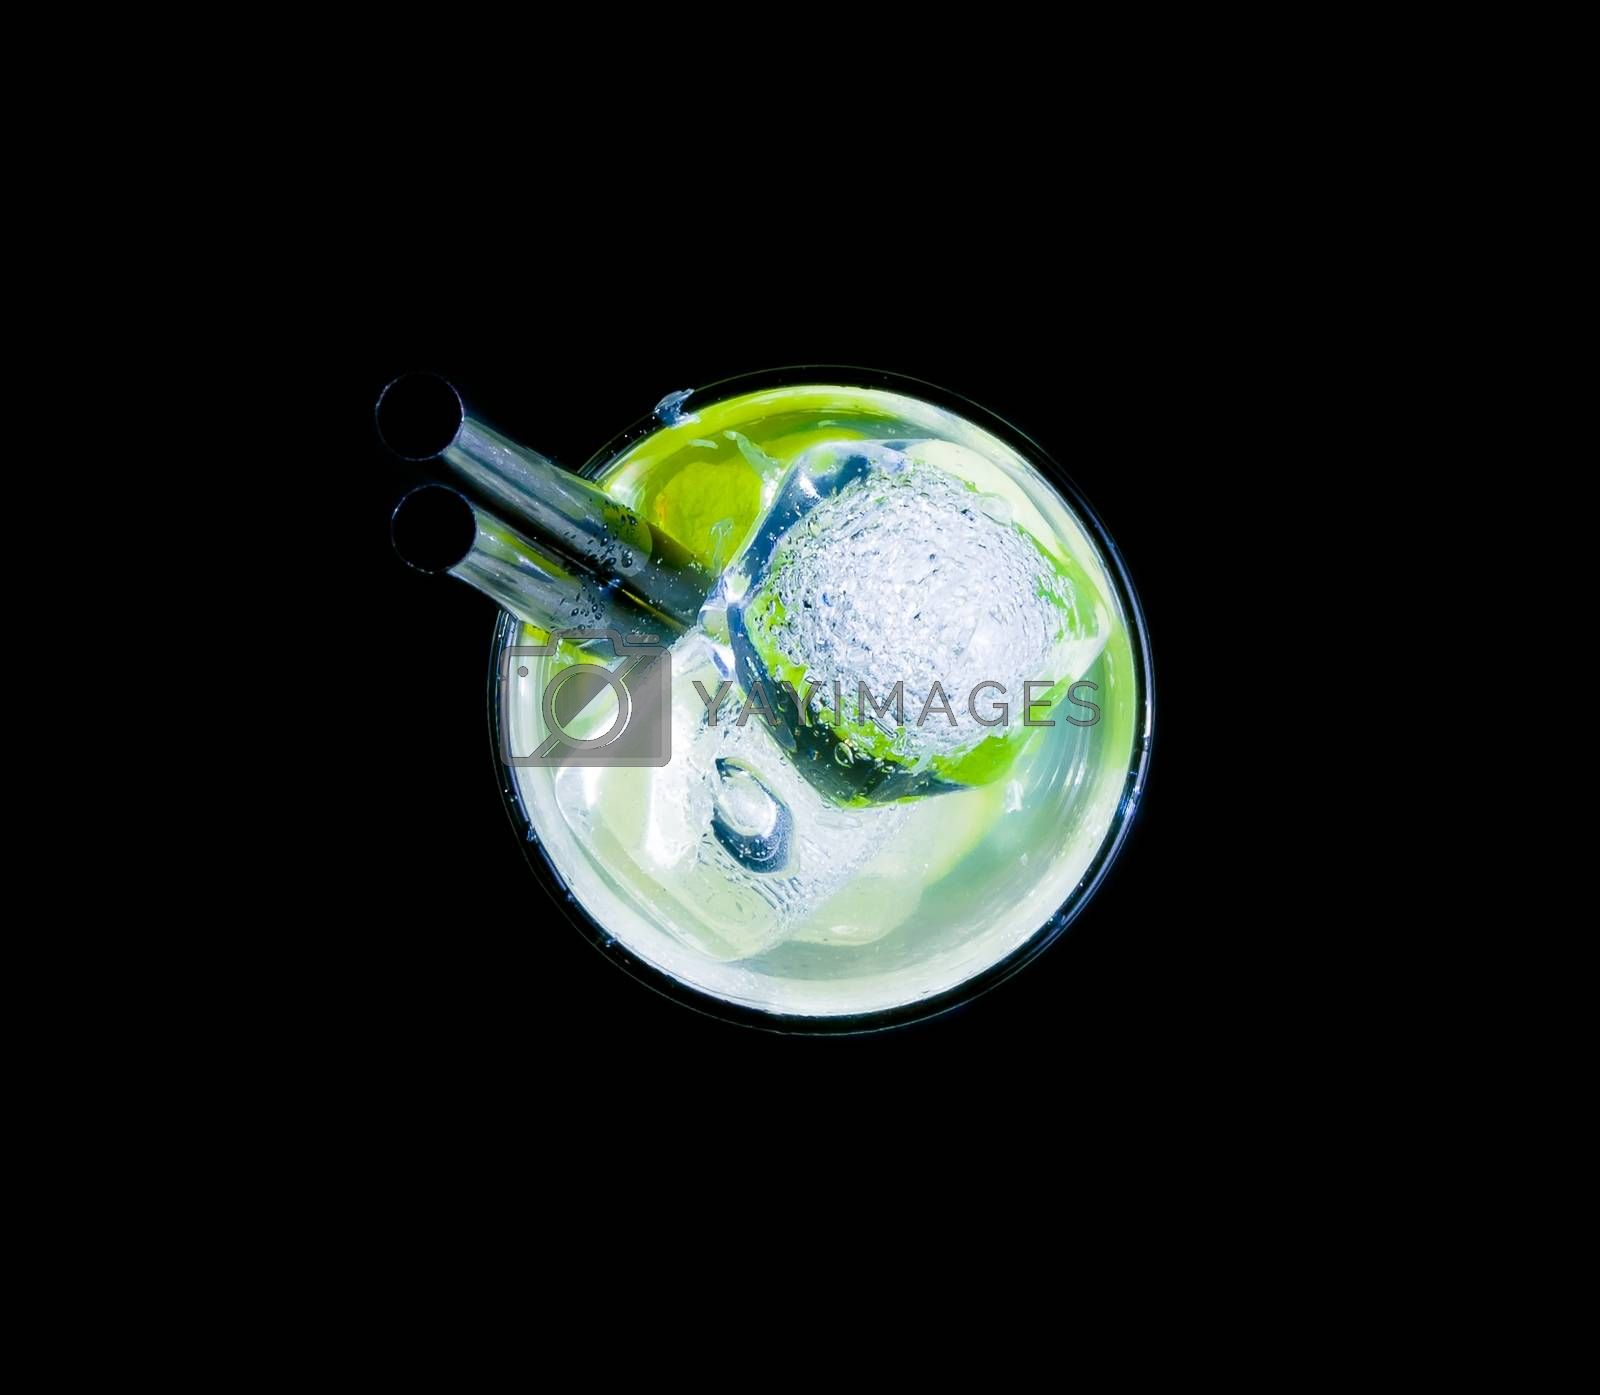 top of view of glass with cocktail and ice with lime slice on black background by donfiore